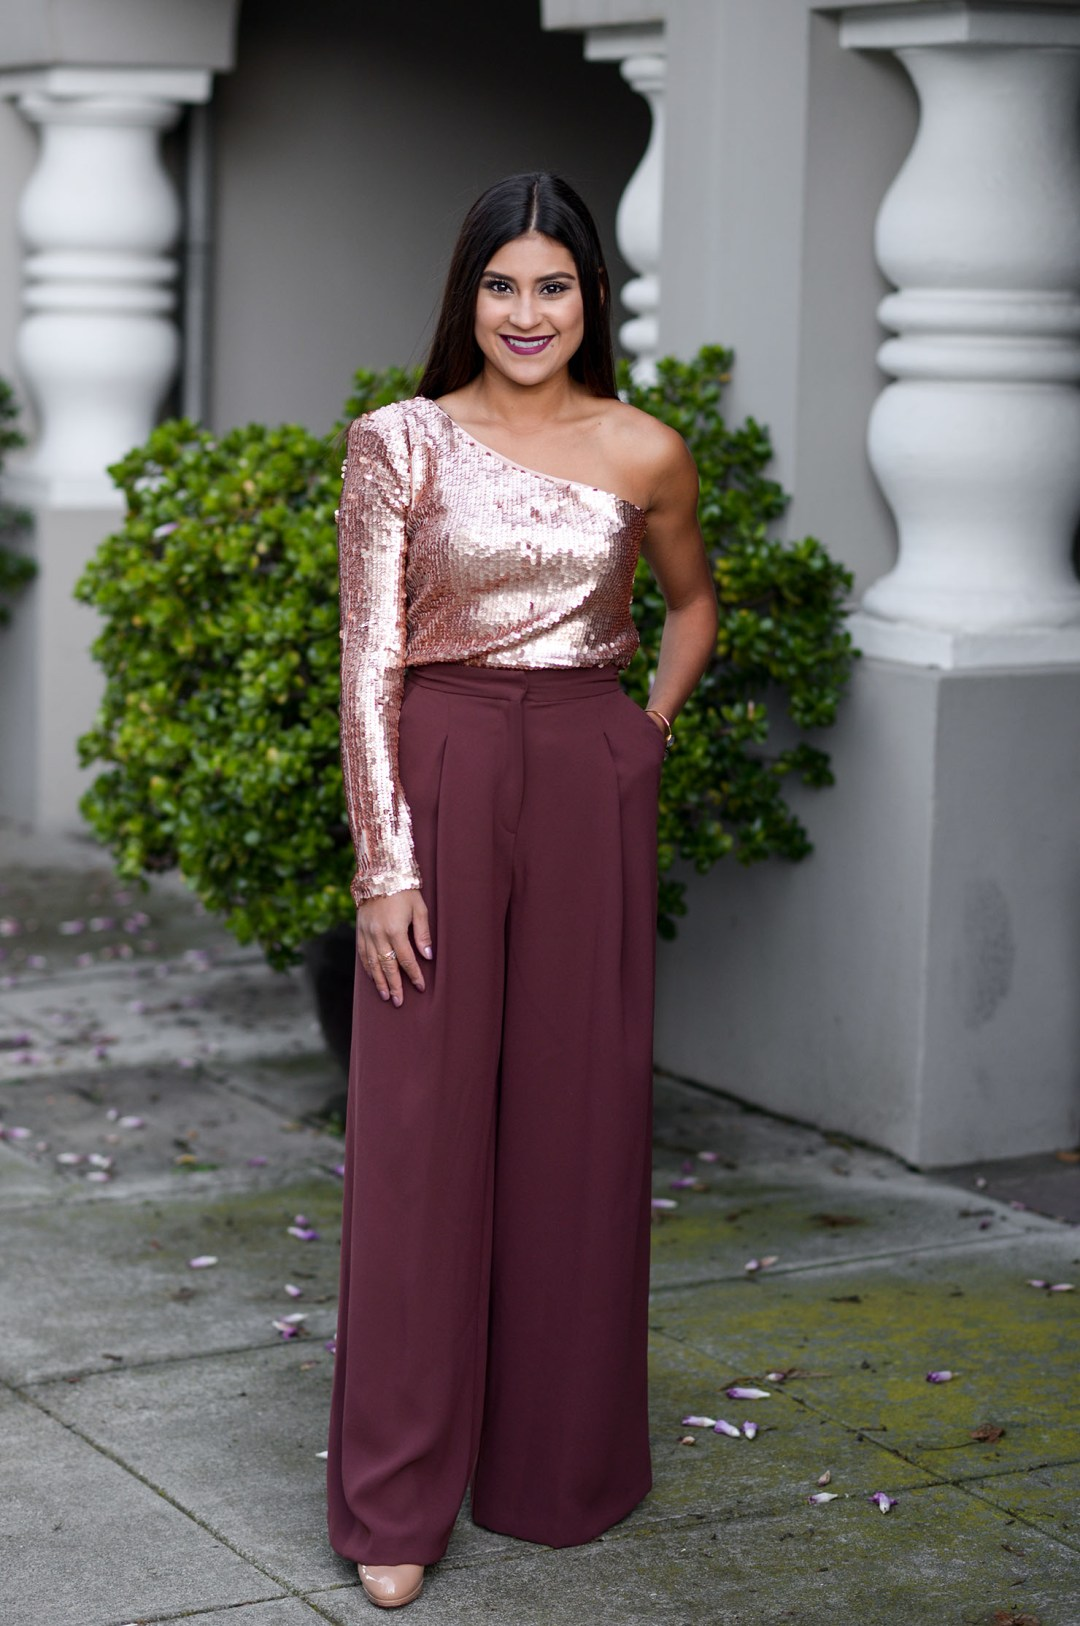 Lifestyle blogger Kelsey Kaplan of Kelsey Kaplan Fashion wearing River Island pants and sequin top for Thanksgiving outfit